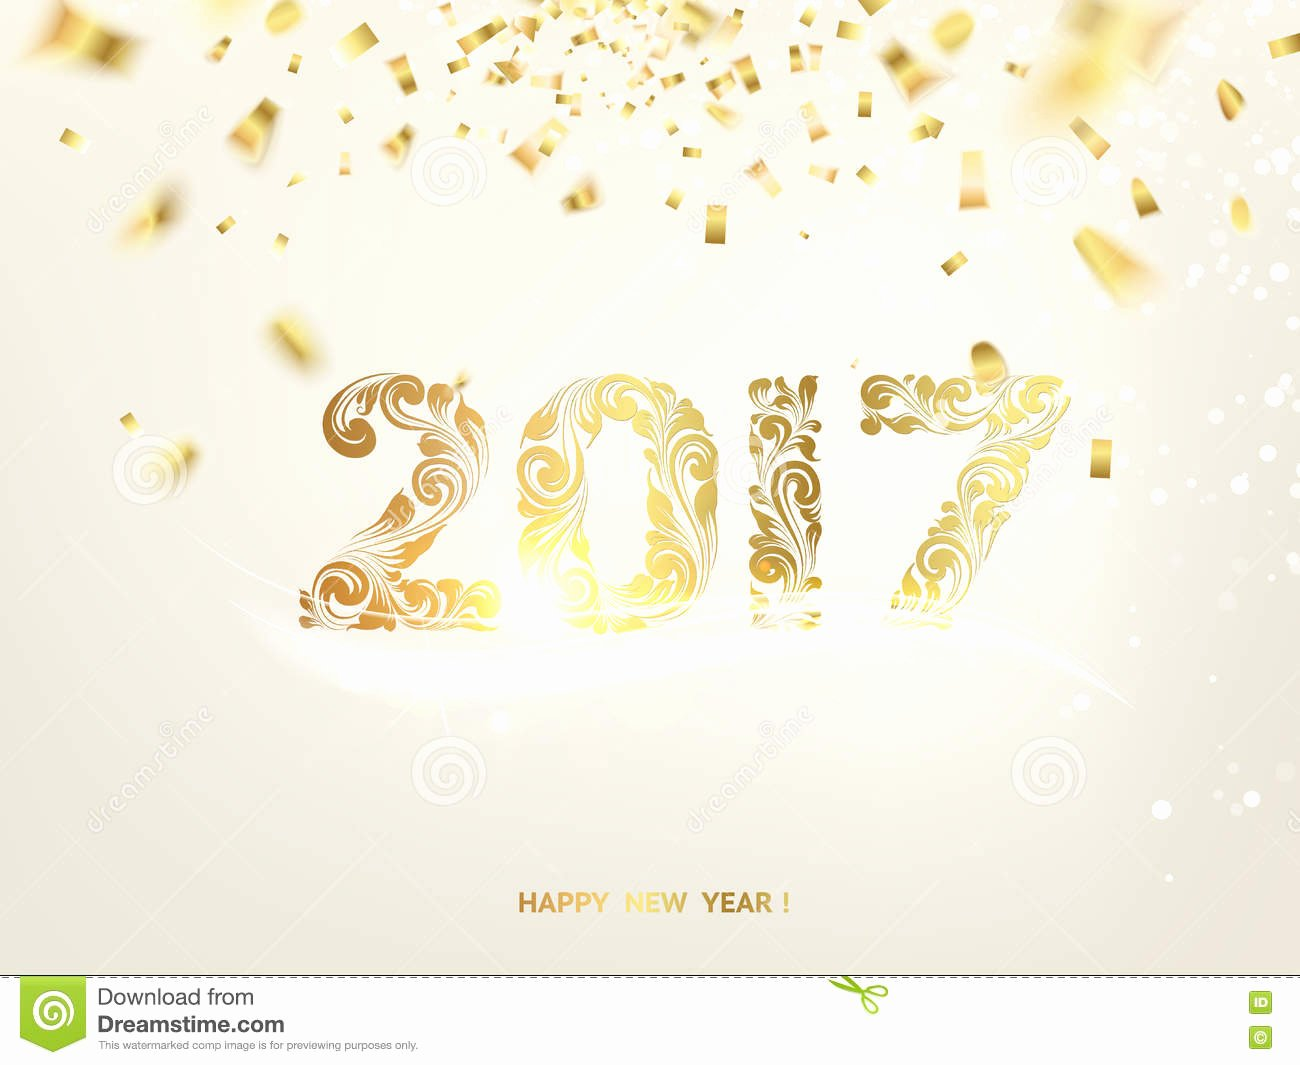 New Year Card Template Lovely Happy New Year 2017 Stock Vector Image Of Glowing Season